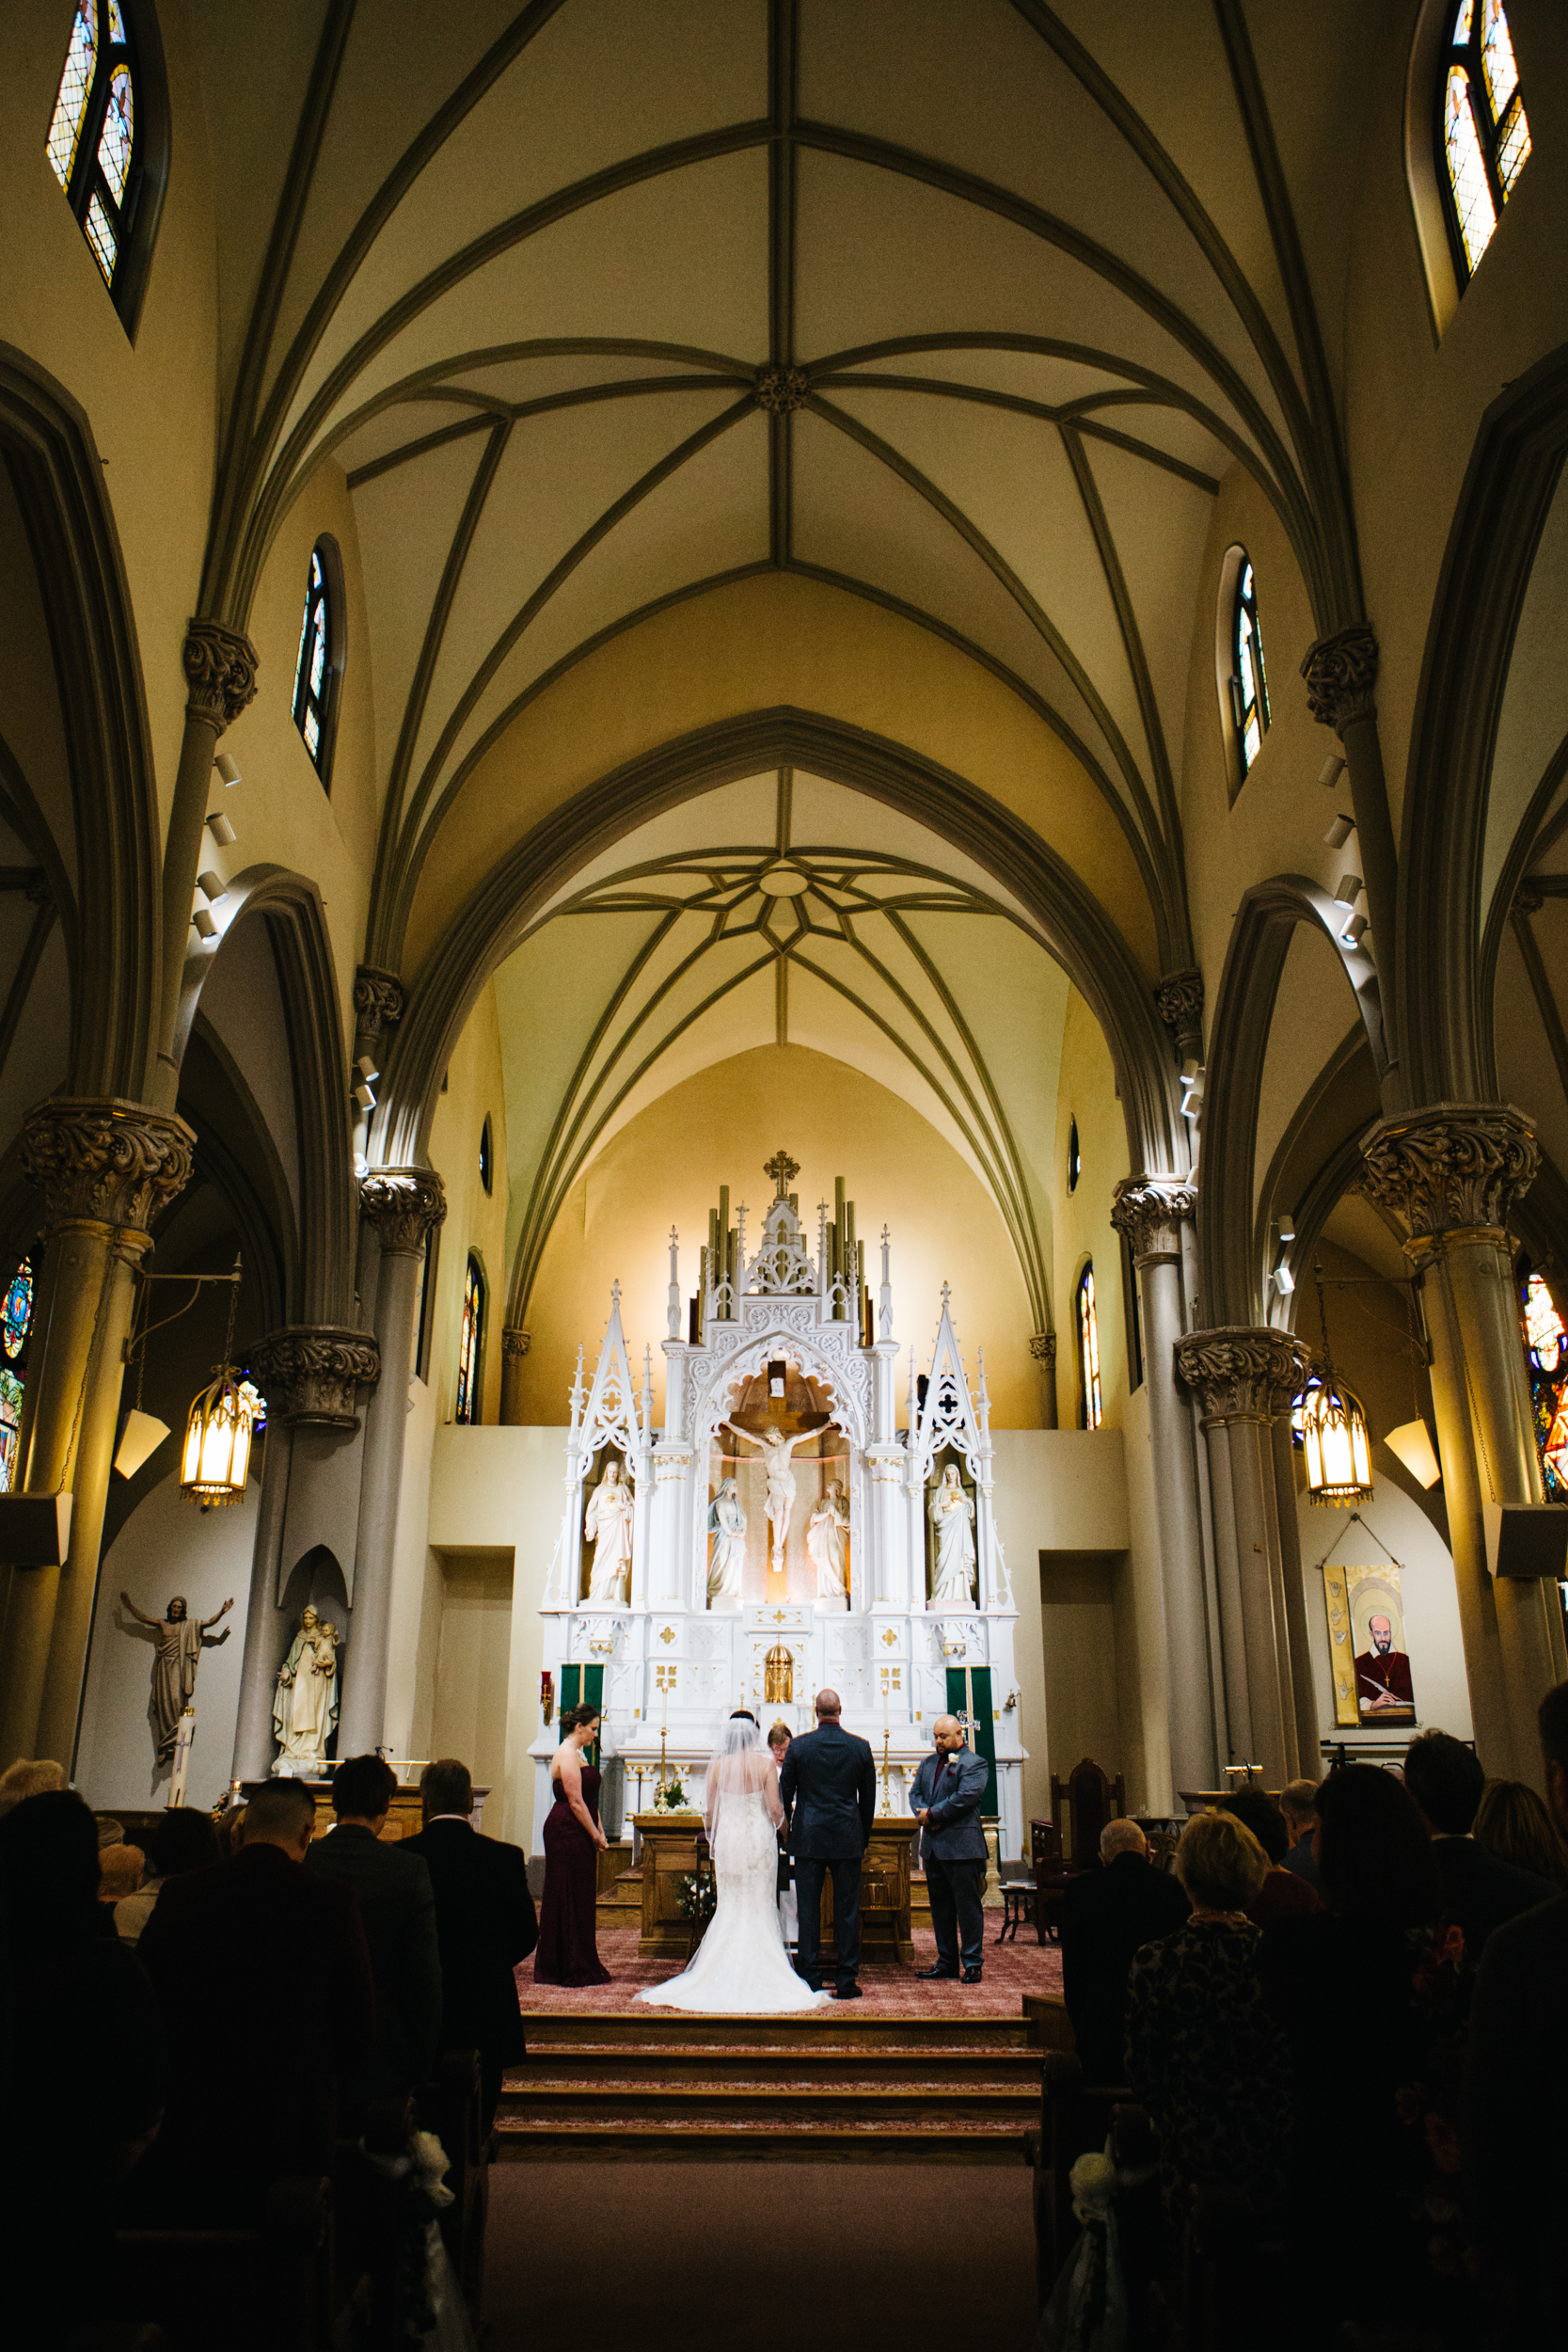 Wide angle view of the alter with a bride and groom standing in front during a wedding at St. Mary of The Mount on Grandview Ave in Pittsburgh PA.